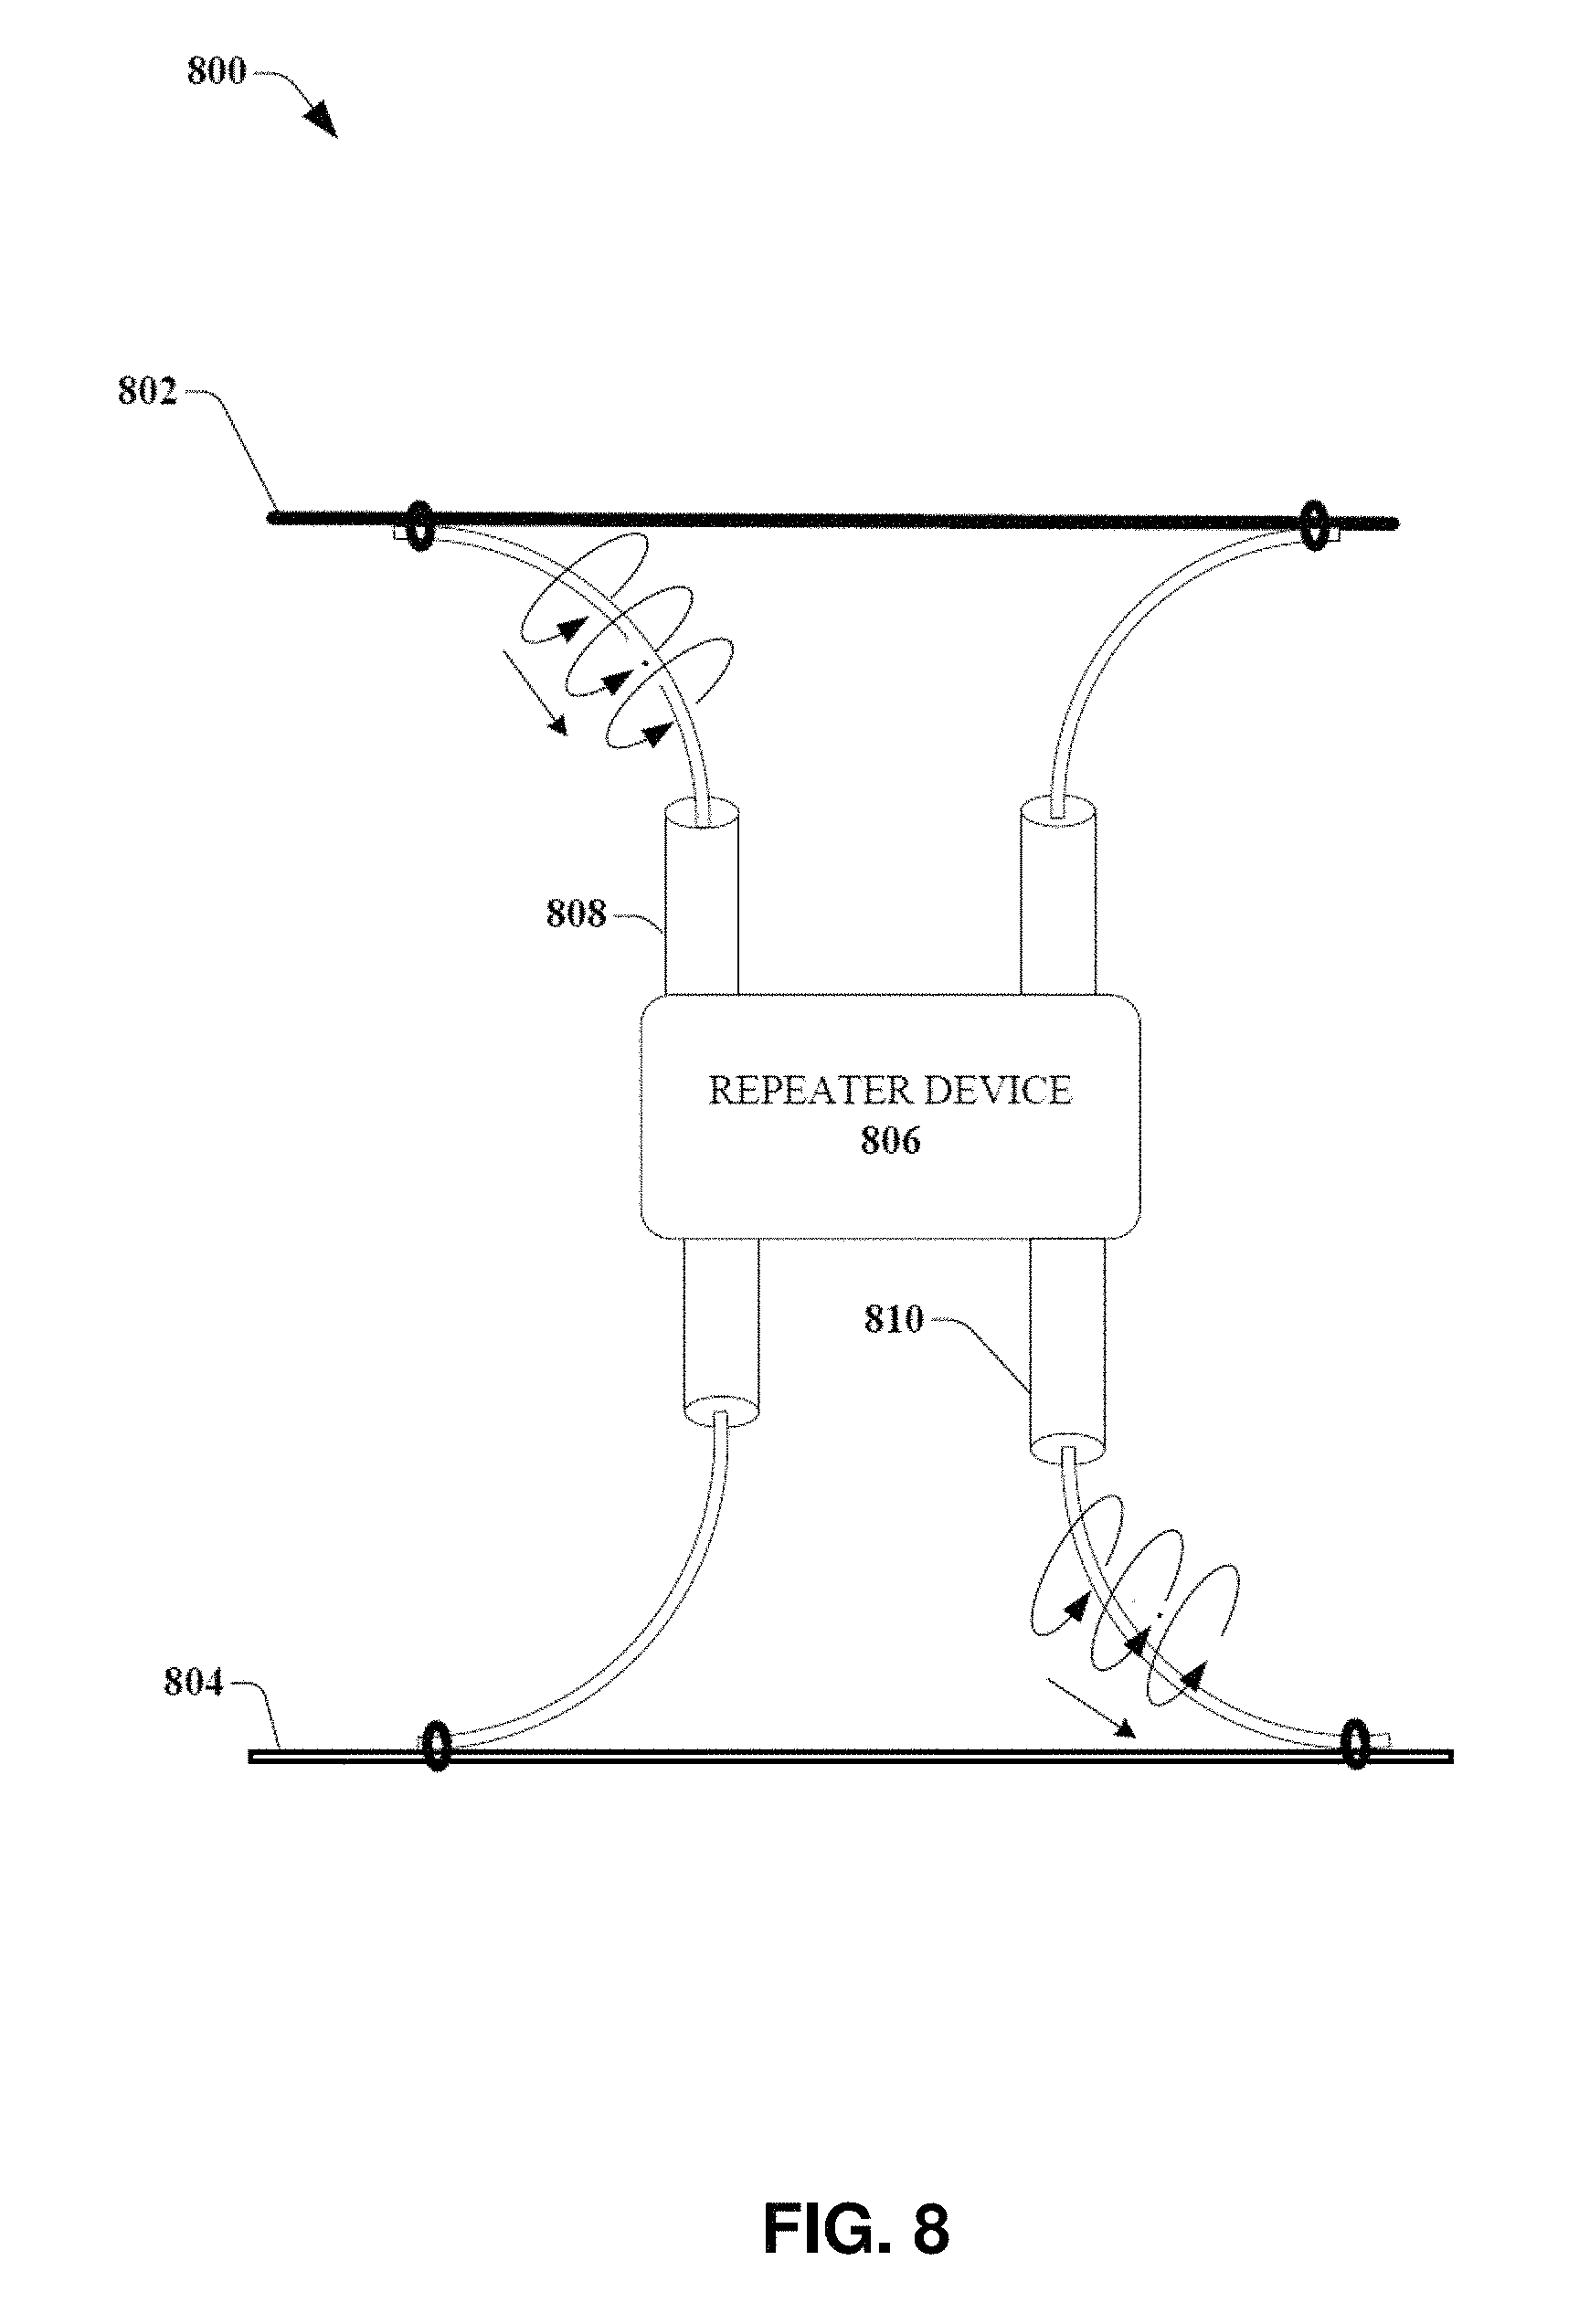 Us9847850b2 Method And Apparatus For Adjusting A Mode Of Waterproof Flat Multilayer Lcd Screen Circuit Board Recycling Copper Communication In Network Google Patents